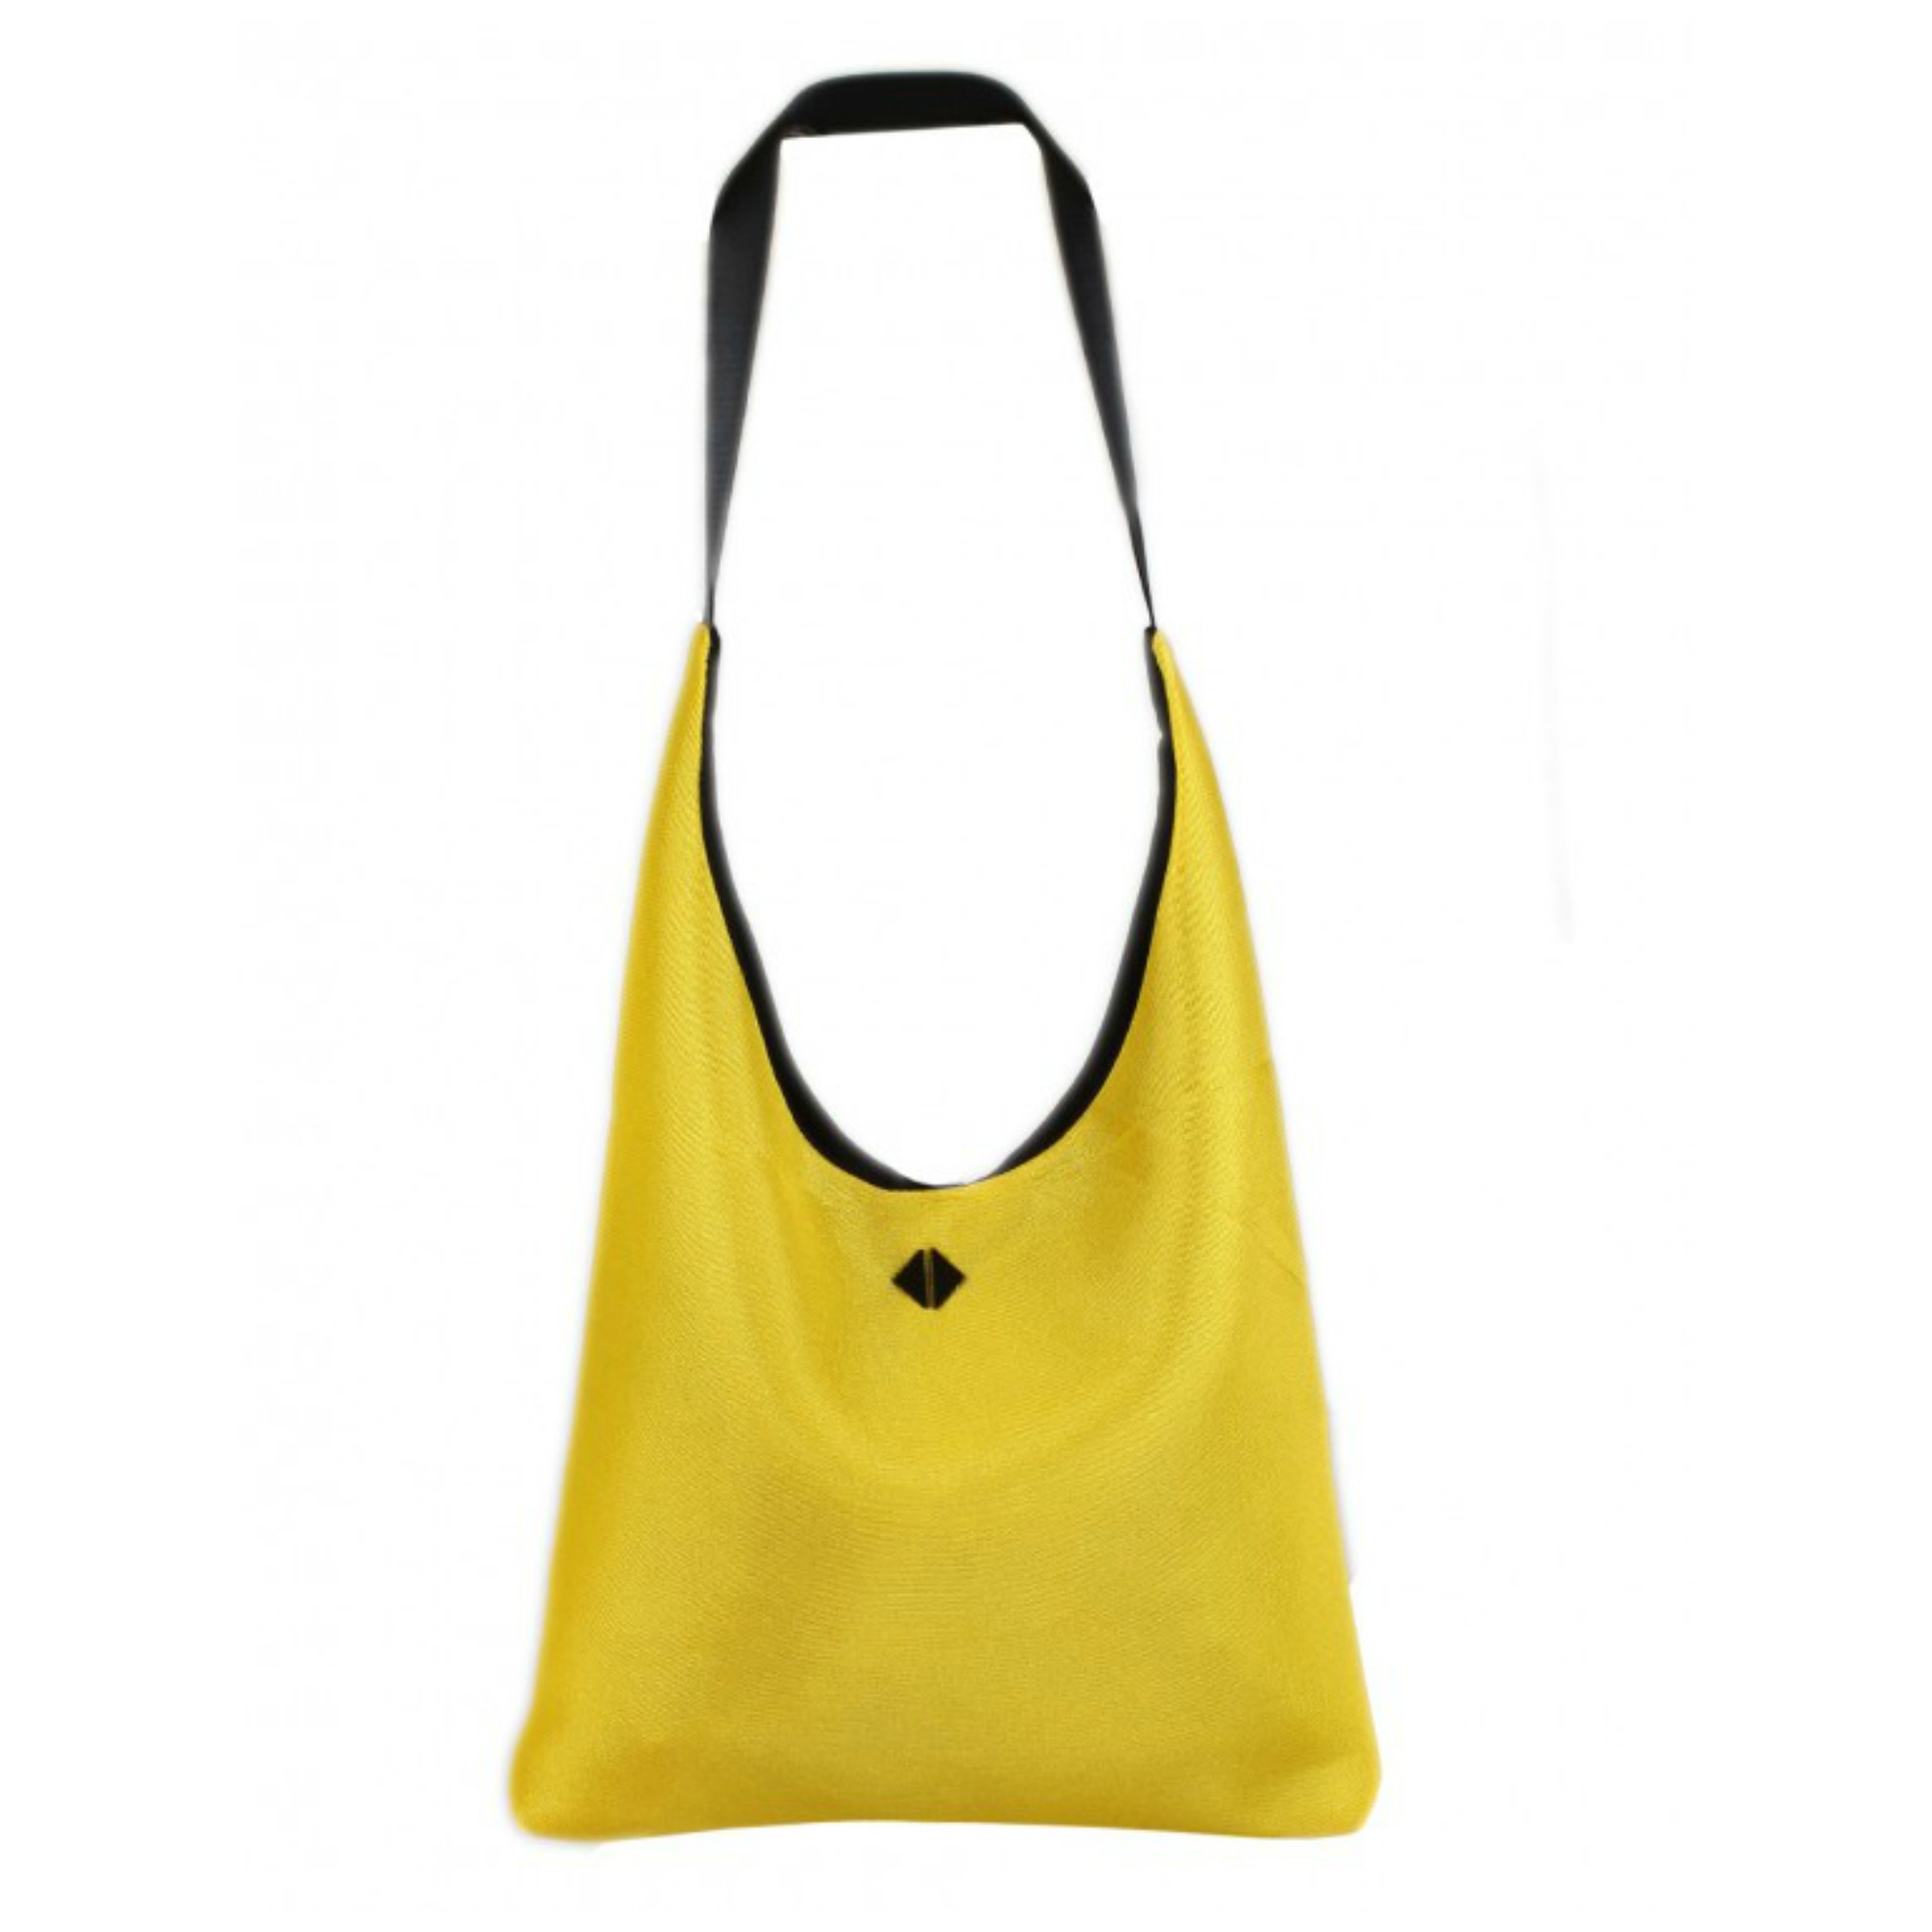 twinsaction t bag sari